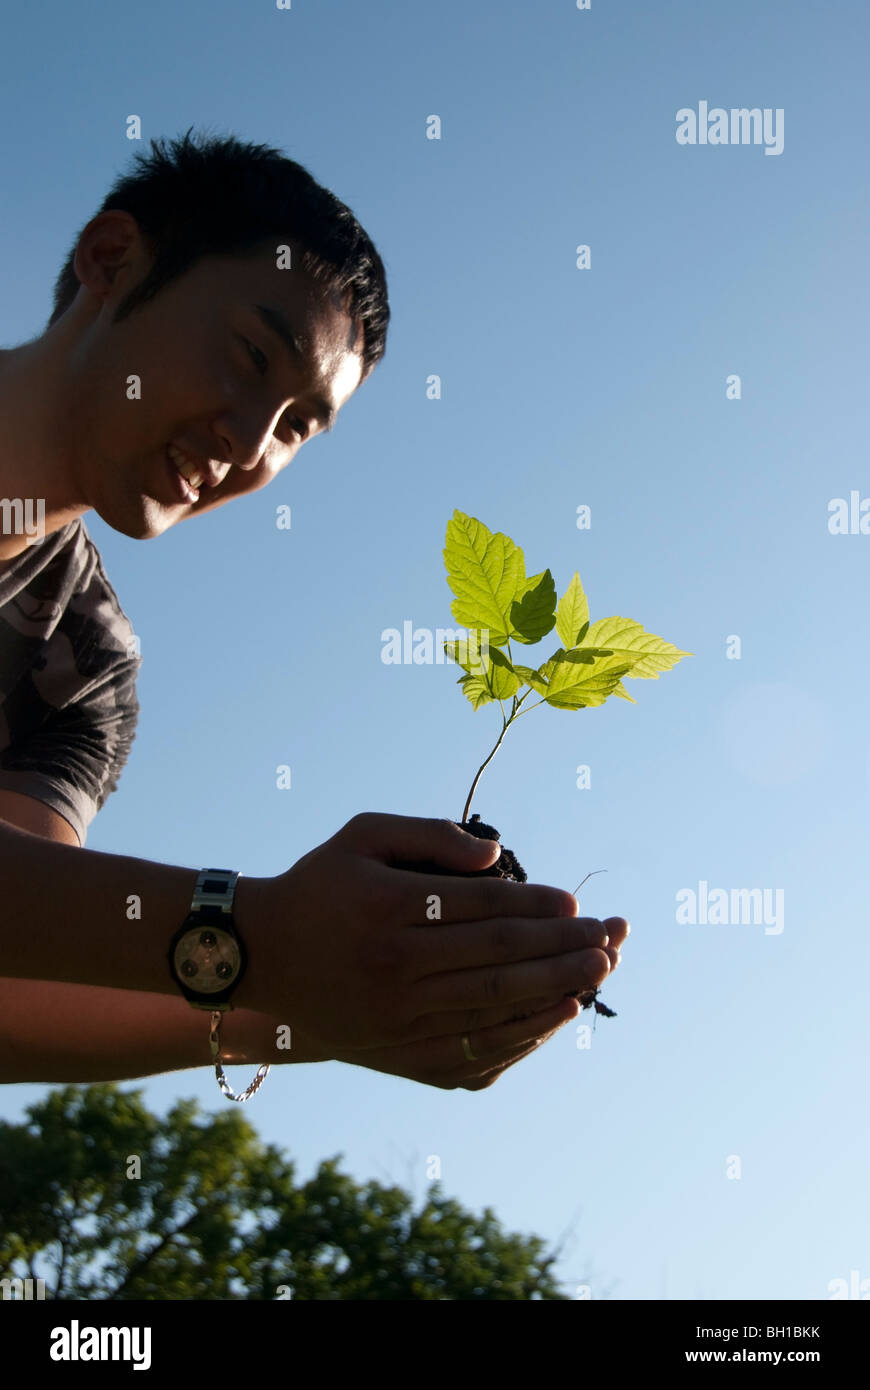 Young man holds seedling, Assiniboine Park, Winnipeg, Manitoba, Canada - Stock Image